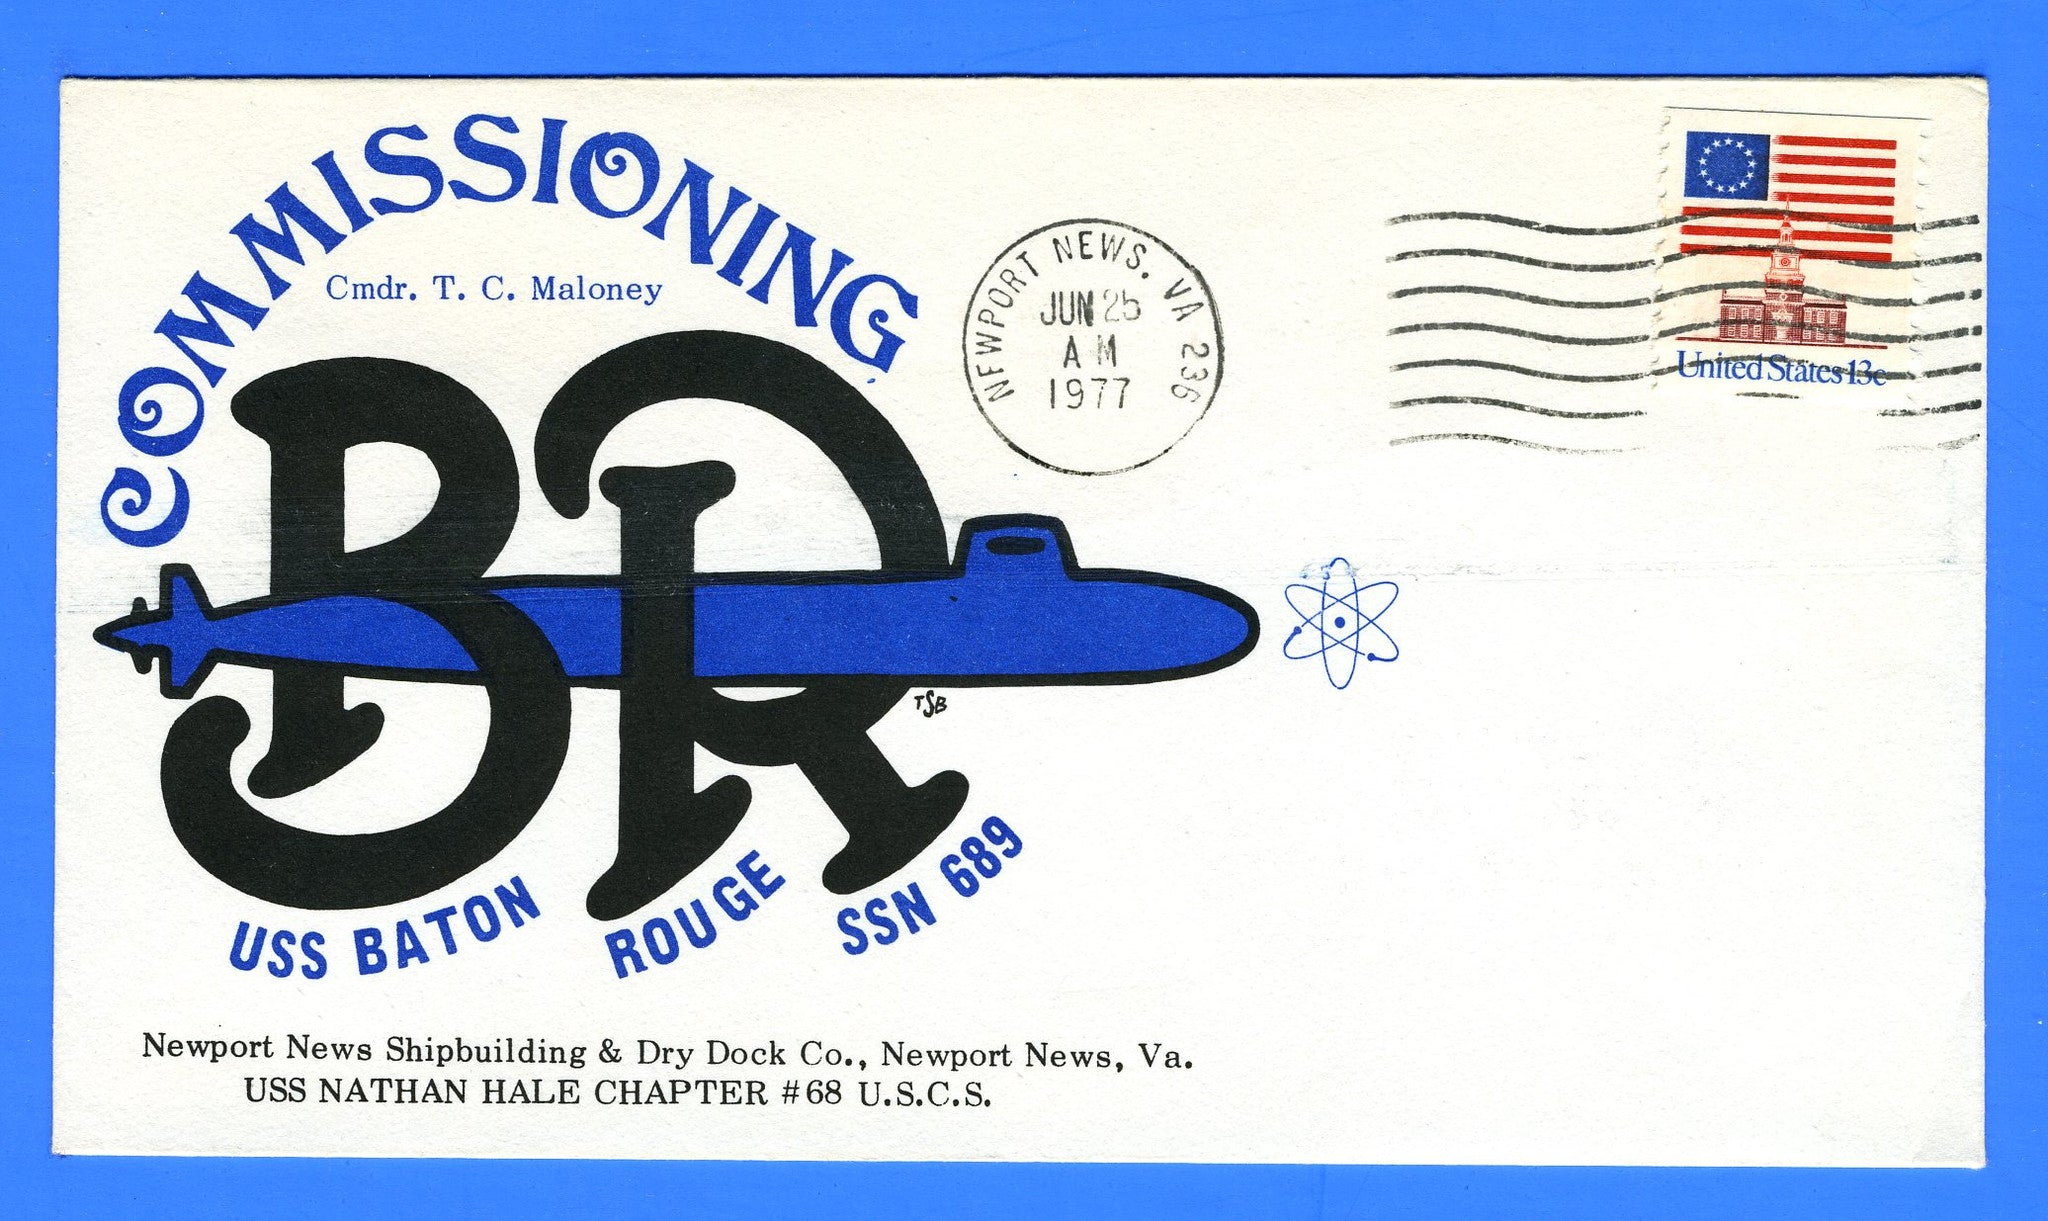 USS Baton Rouge SSN-698 Commissioning June 25, 1977 - Cachet by USS Nathan Hale Chapter No. 68, USCS